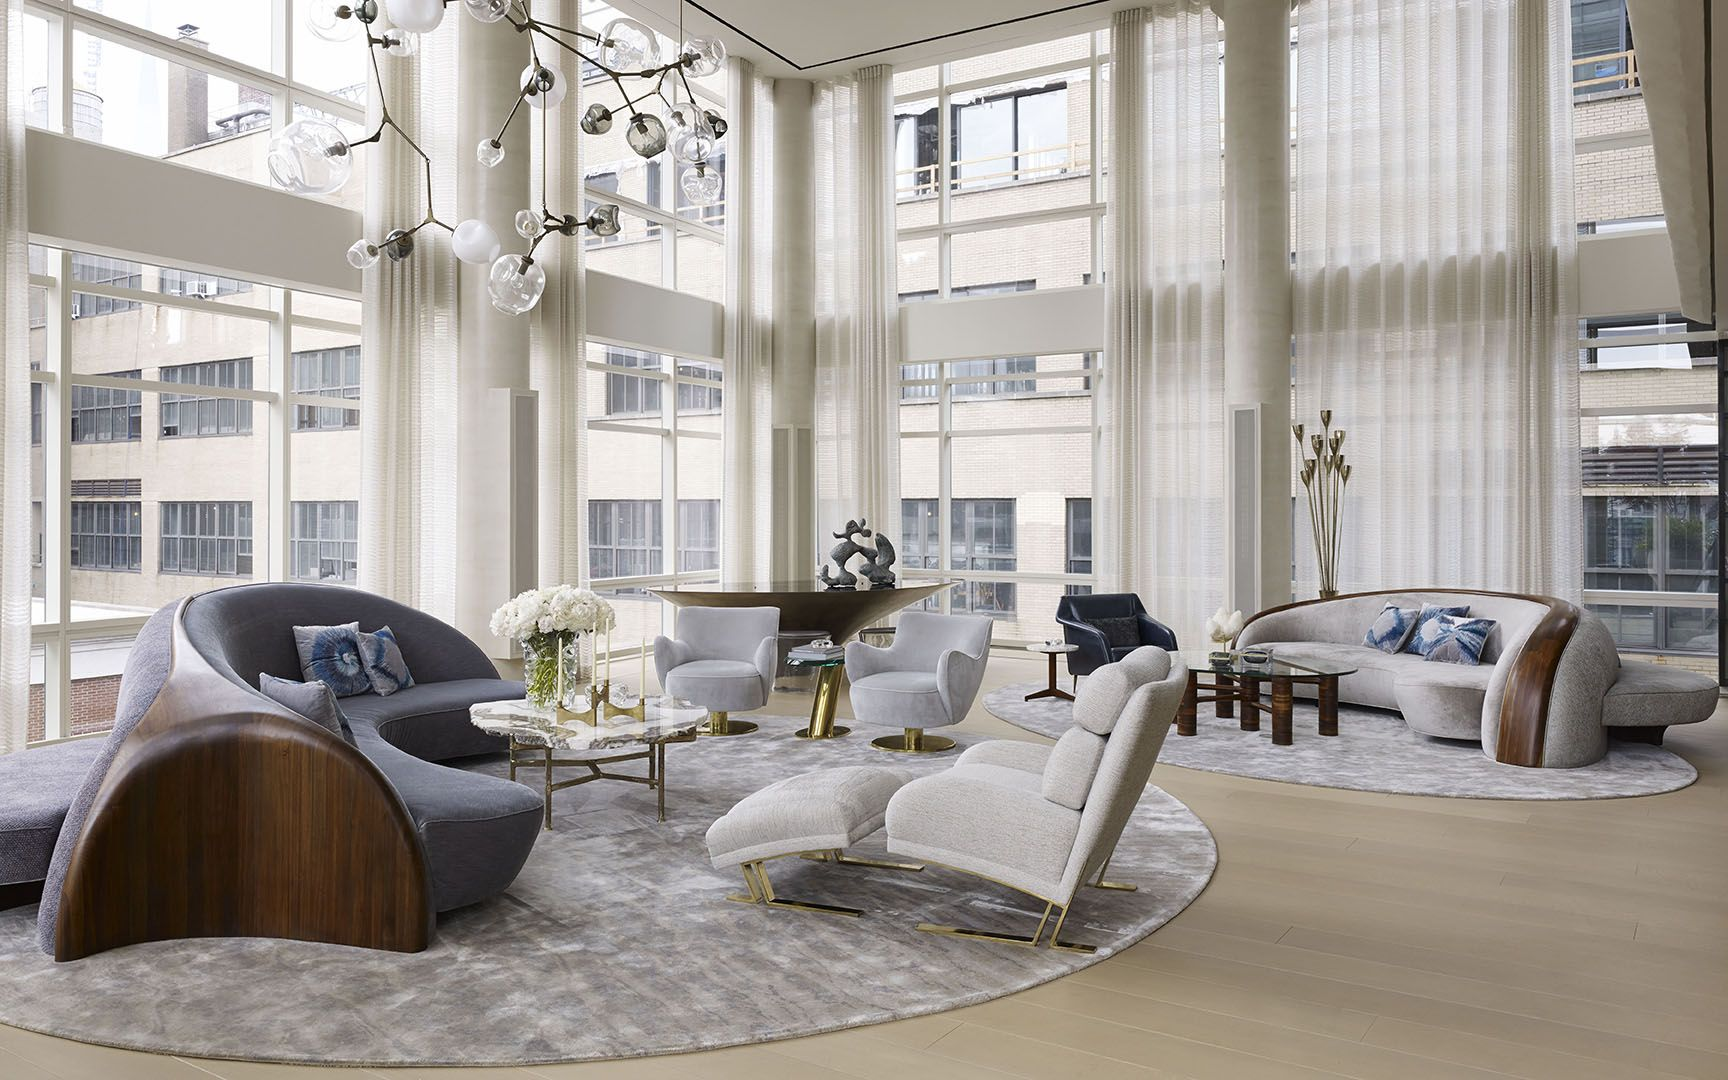 Vladimir Kagan Created Furniture Including The Sofas For This Lower  Manhattan Apartment Designed By Amy Lau